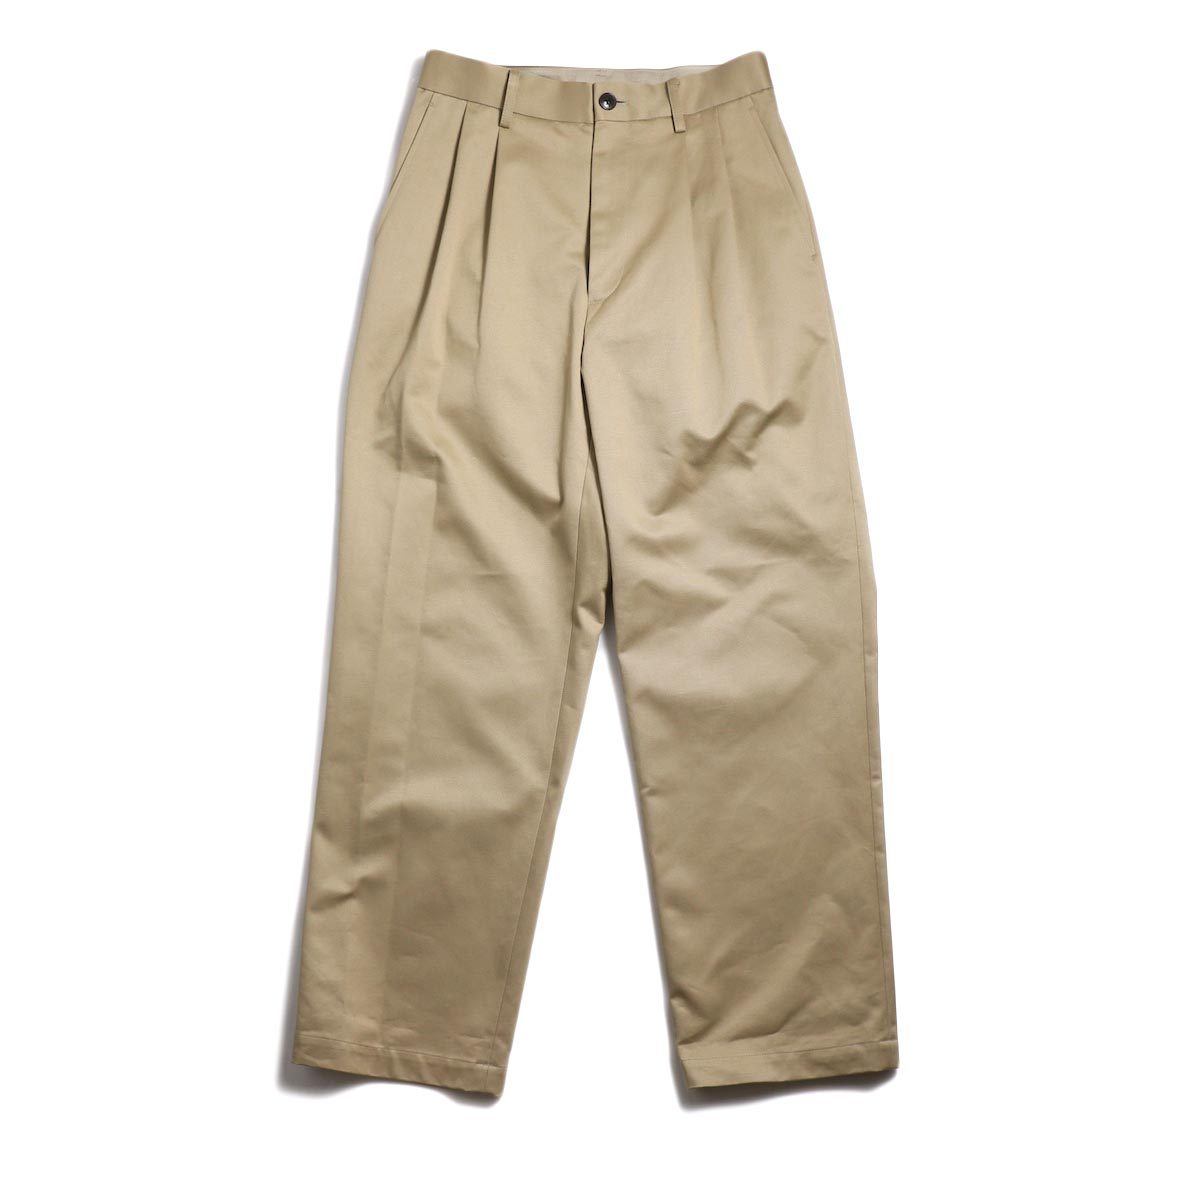 UNIVERSAL PRODUCTS / 2Tuck Wide Chino Pants -Beige